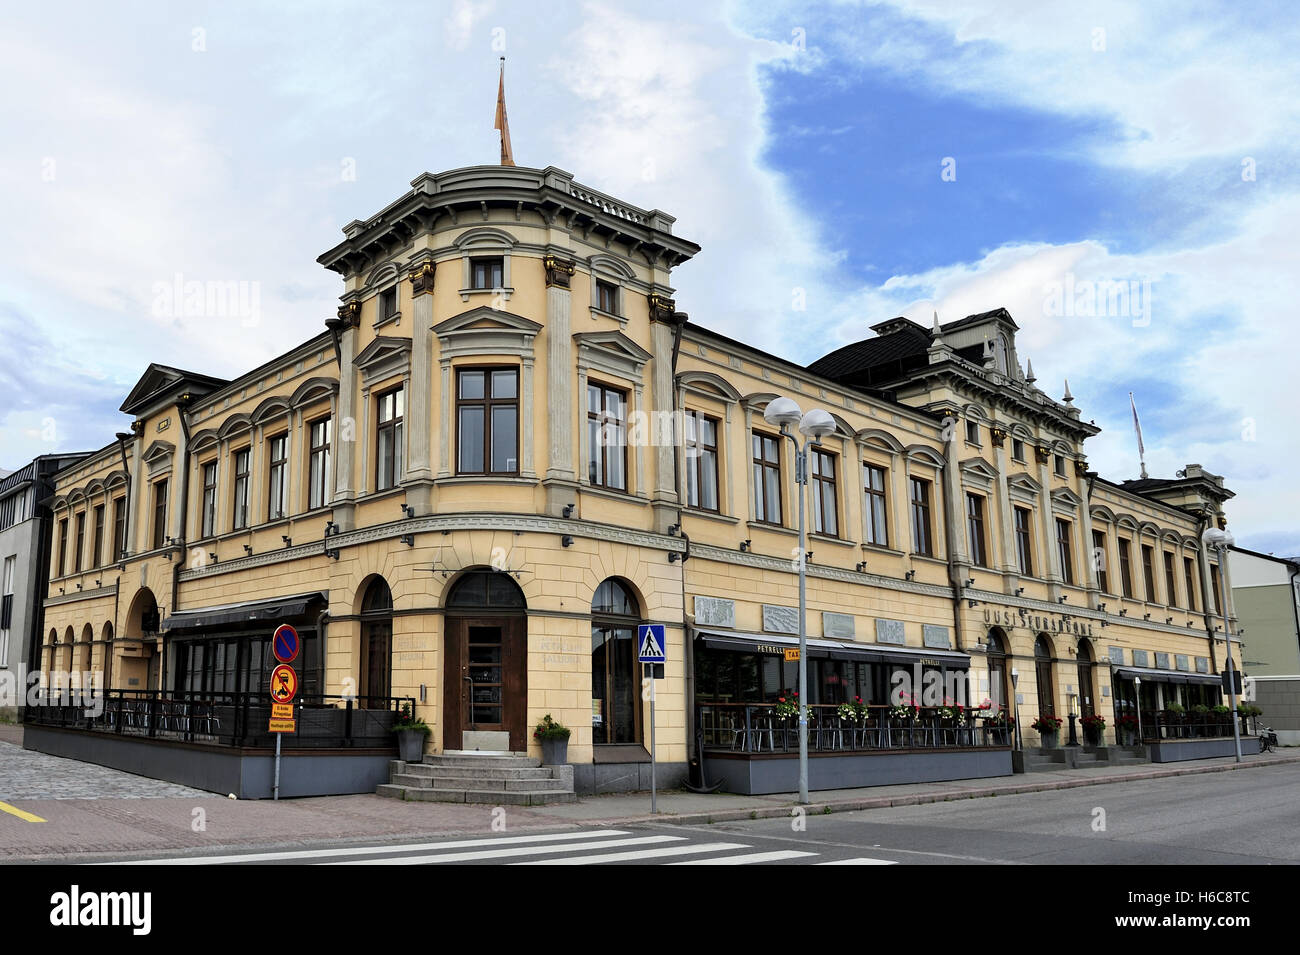 Pub Petrellin Saluuna was designed by architect Hugo Neuman, completed in 1884 - Stock Image